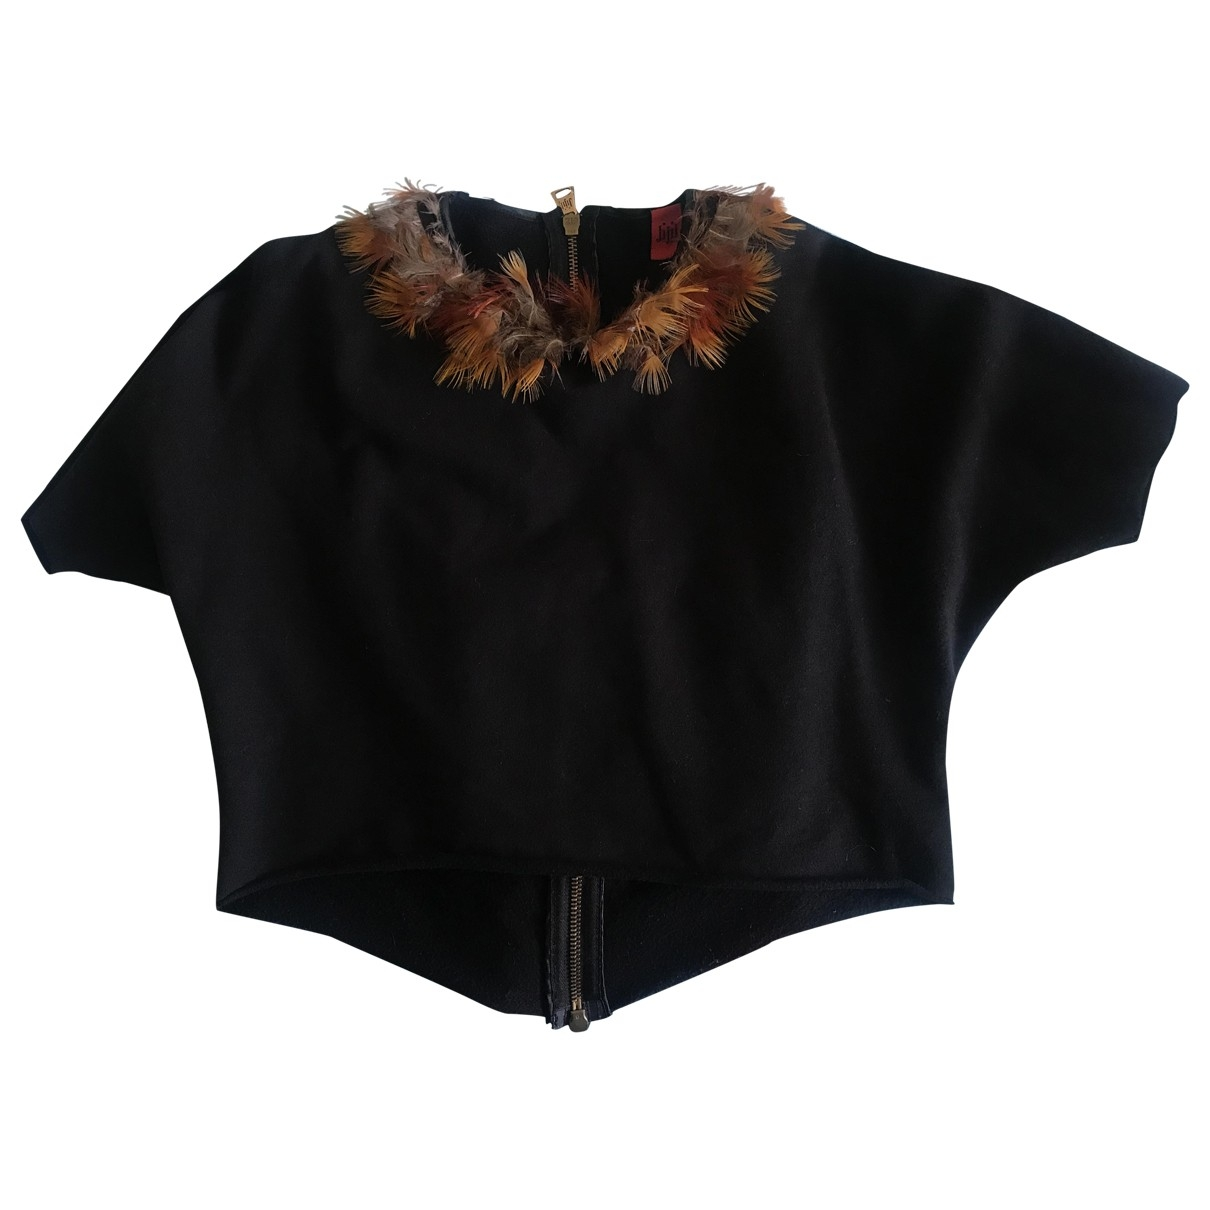 Jijil \N Black Cotton  top for Kids 14 years - S FR